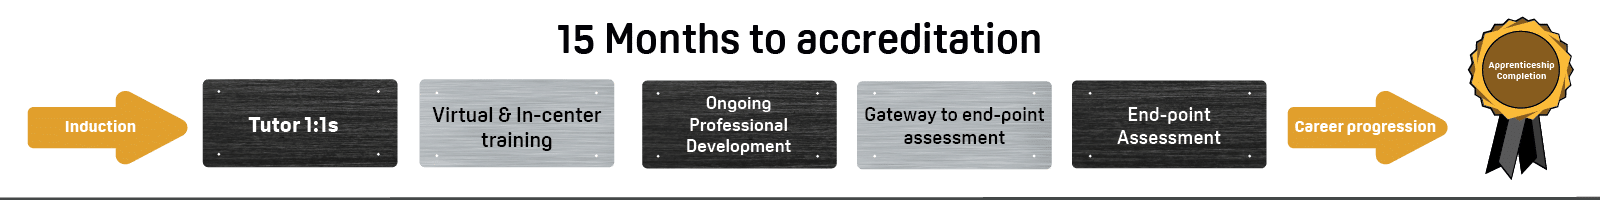 15 months to accreditation